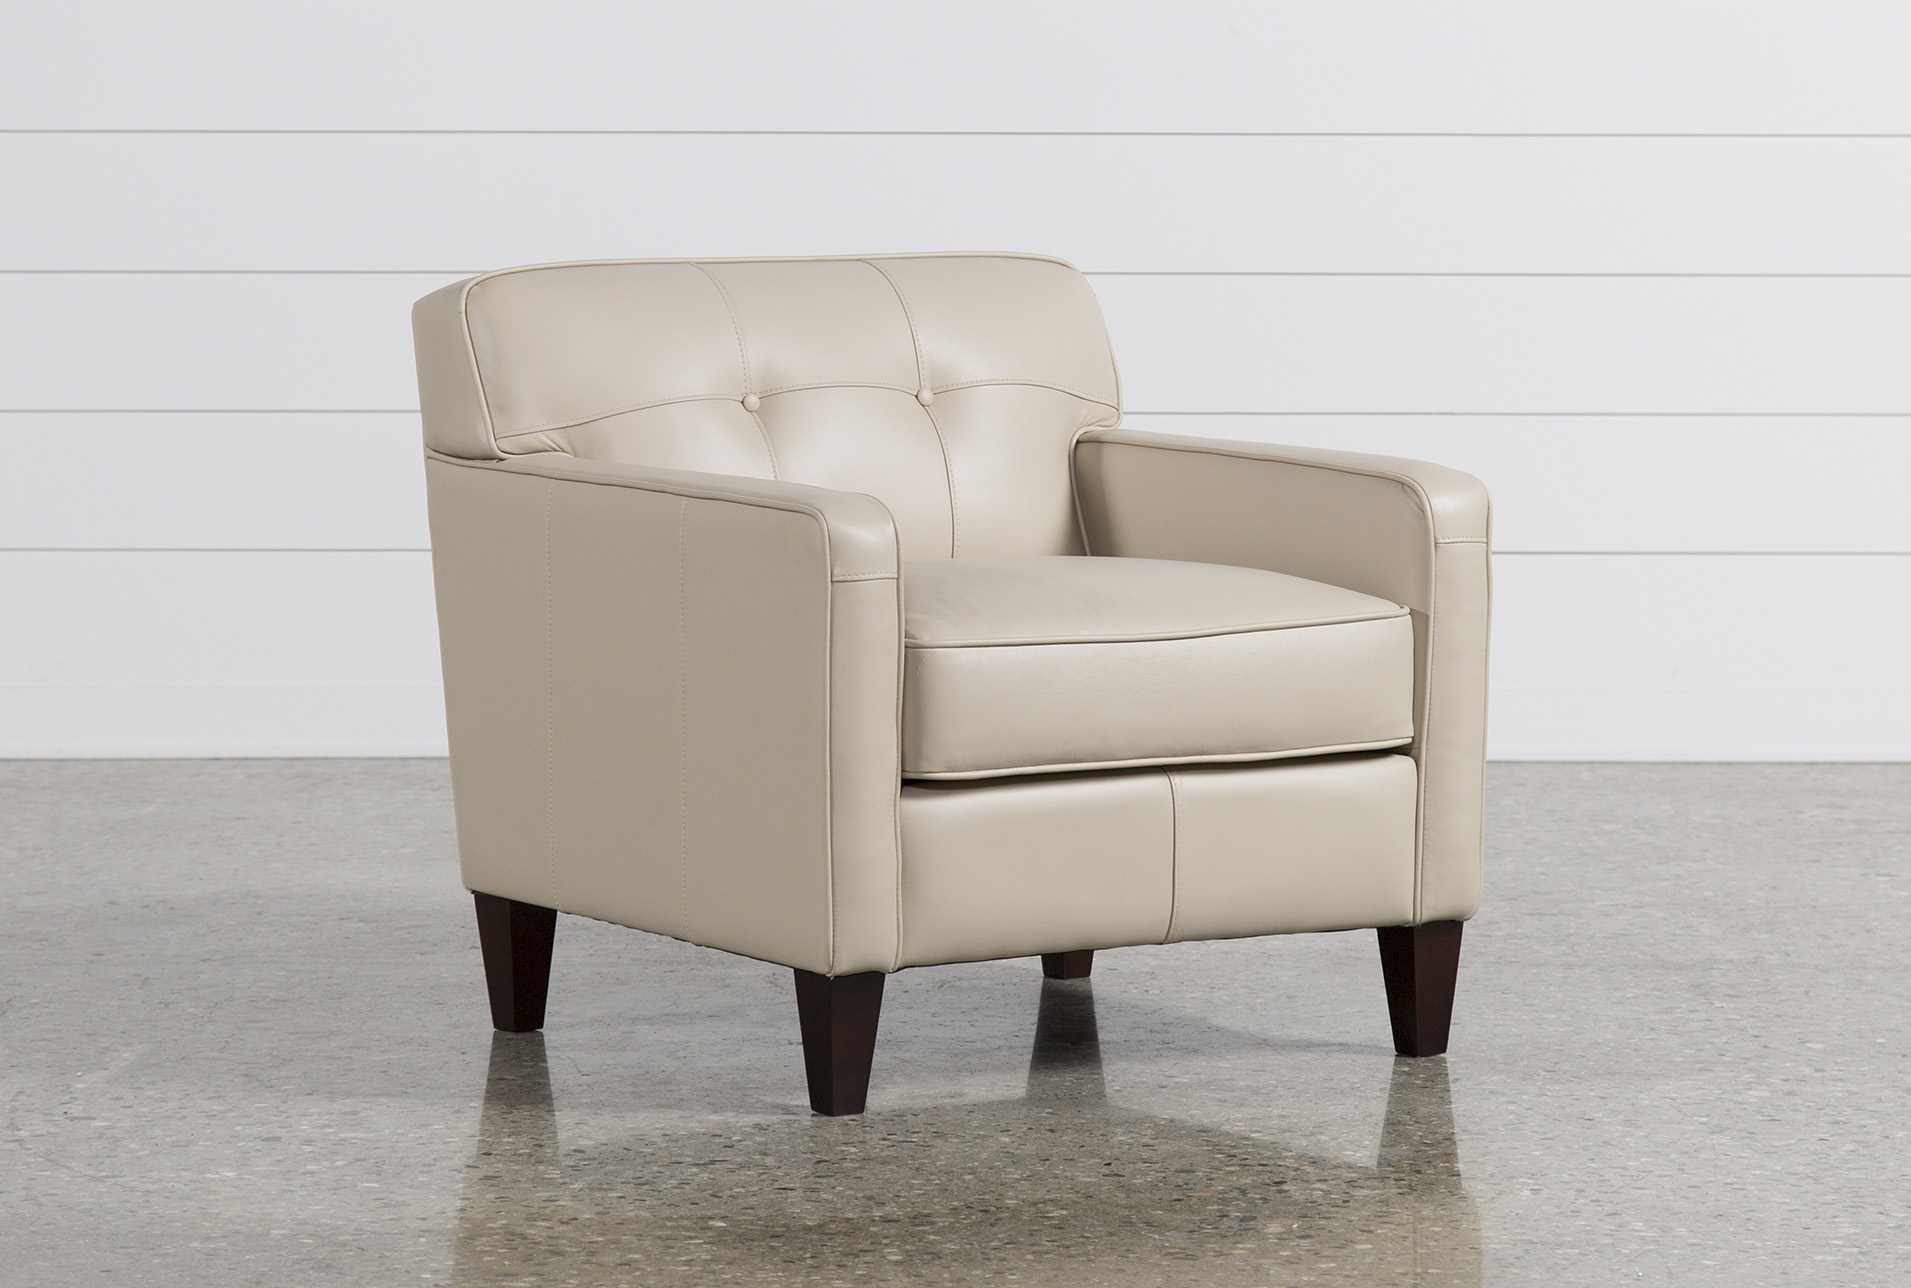 Madison Taupe Leather Chair (Qty: 1) Has Been Successfully Added To Your  Cart.